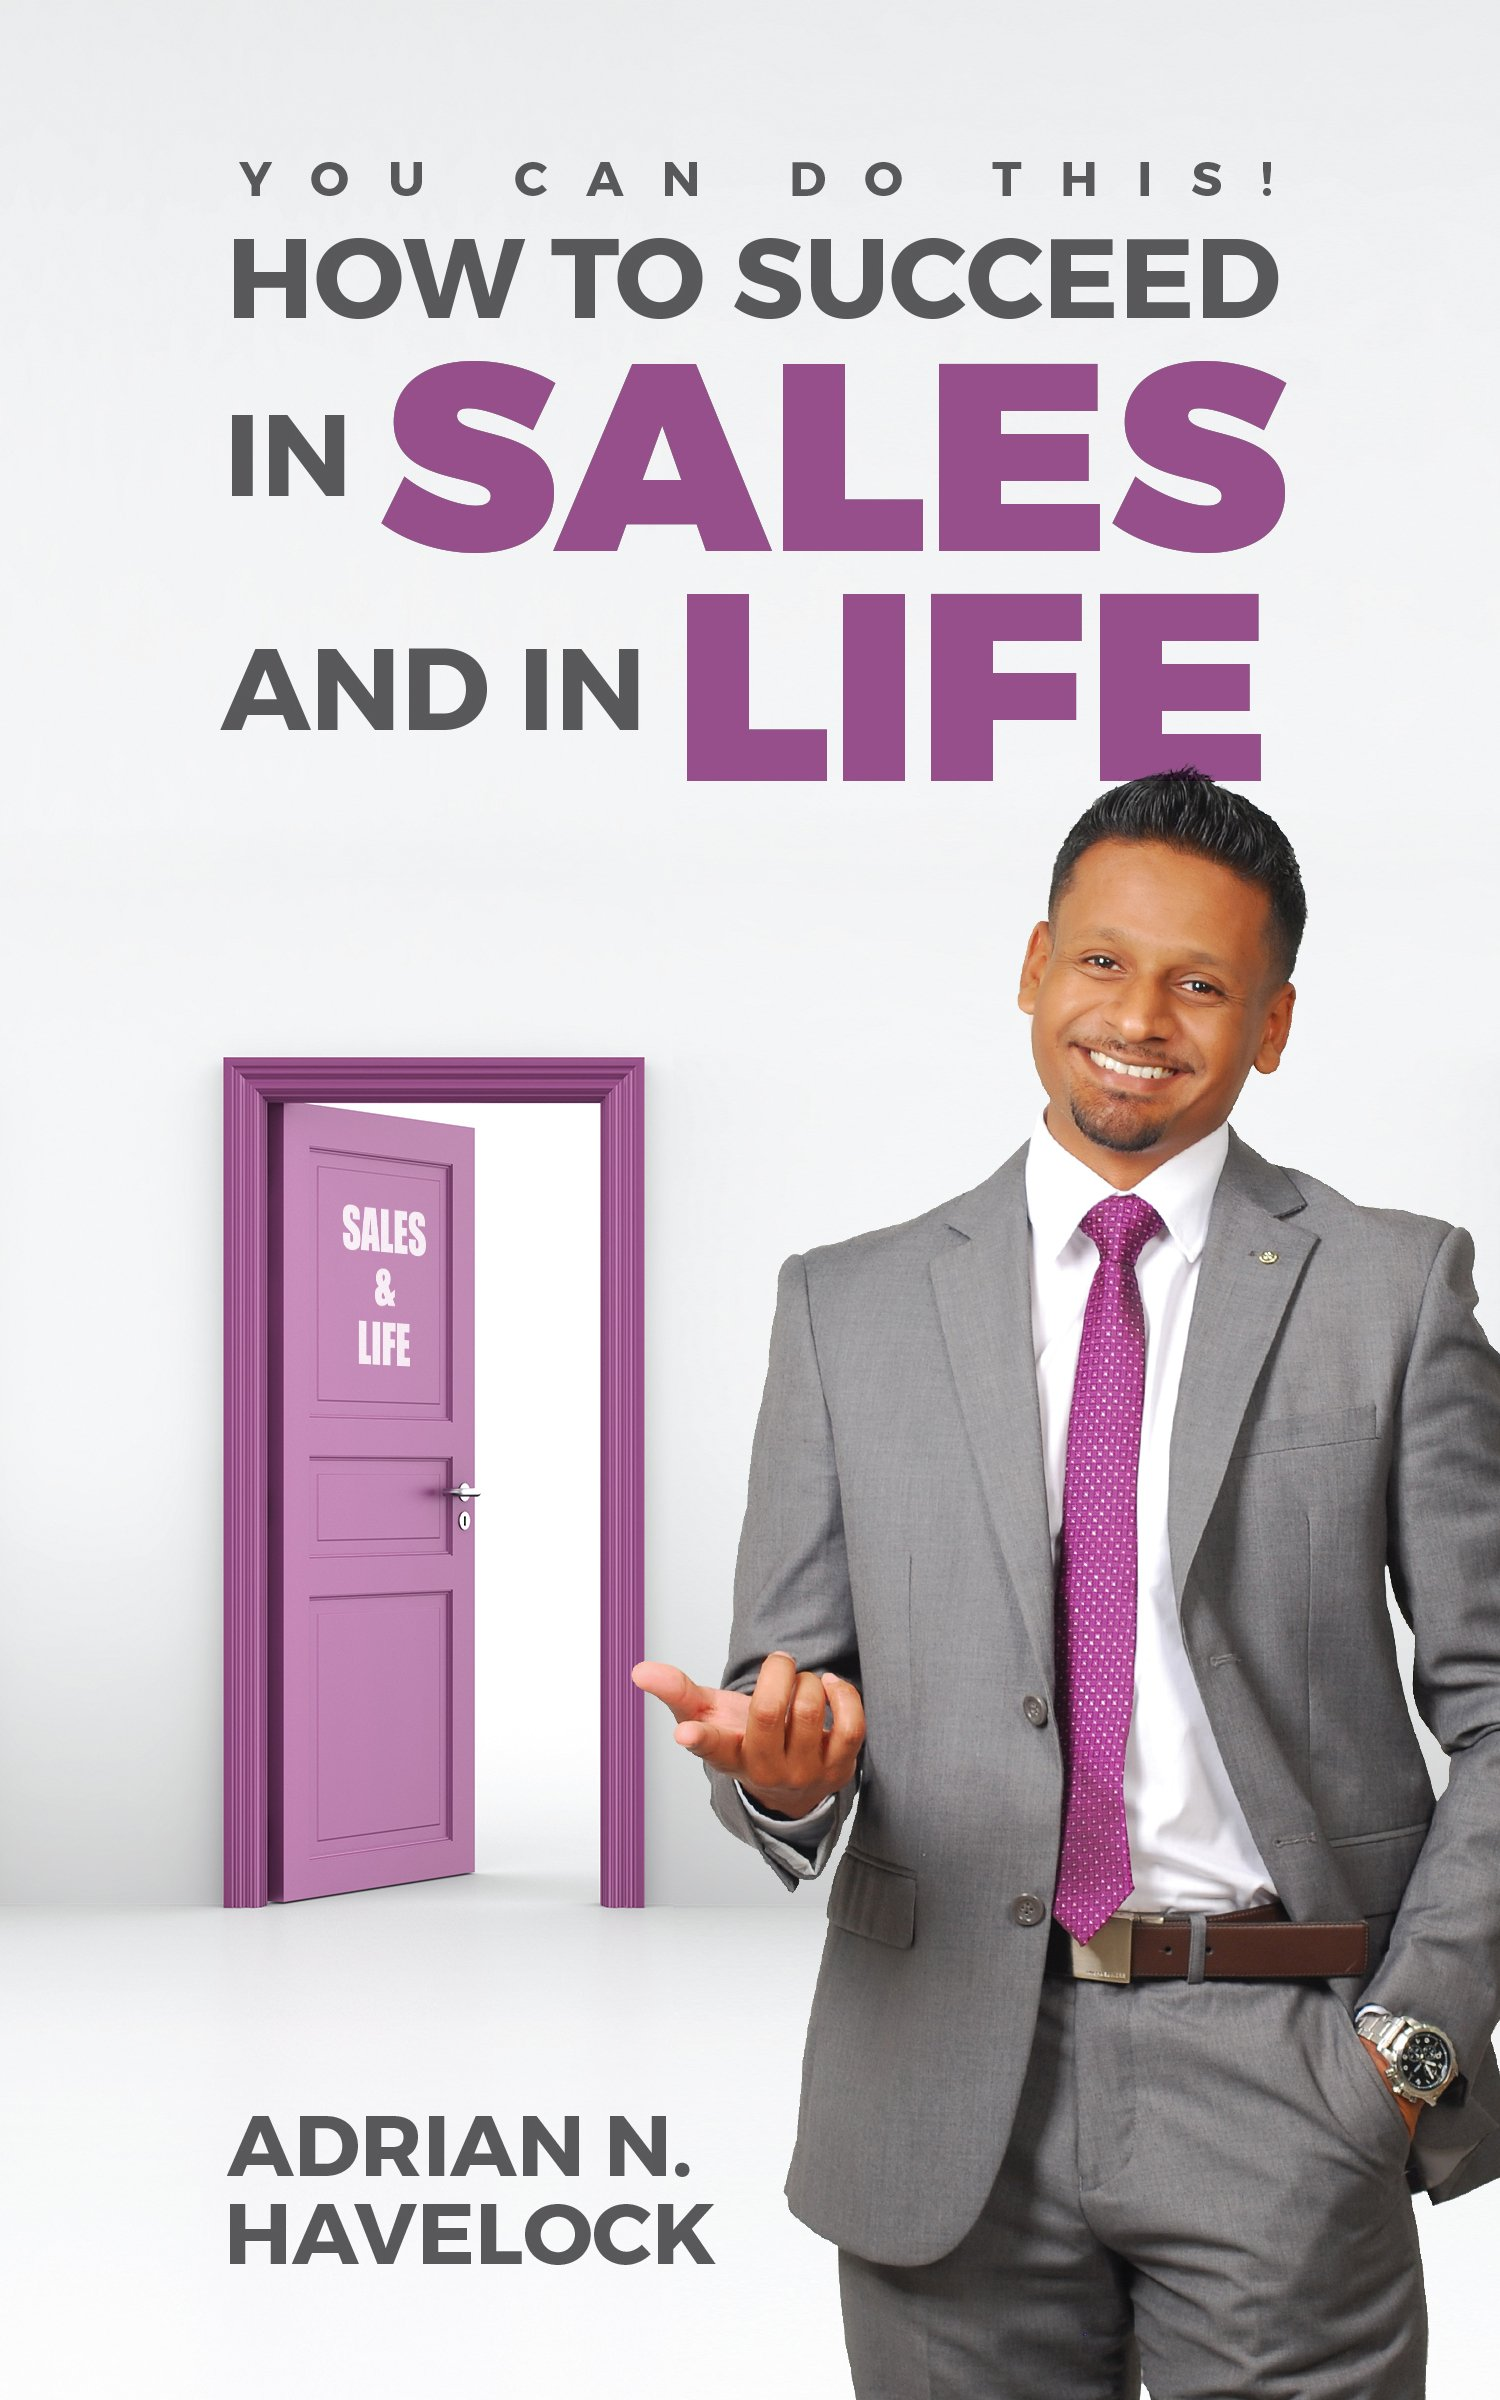 You Can Do This! How To Succeed In Sales and In Life.